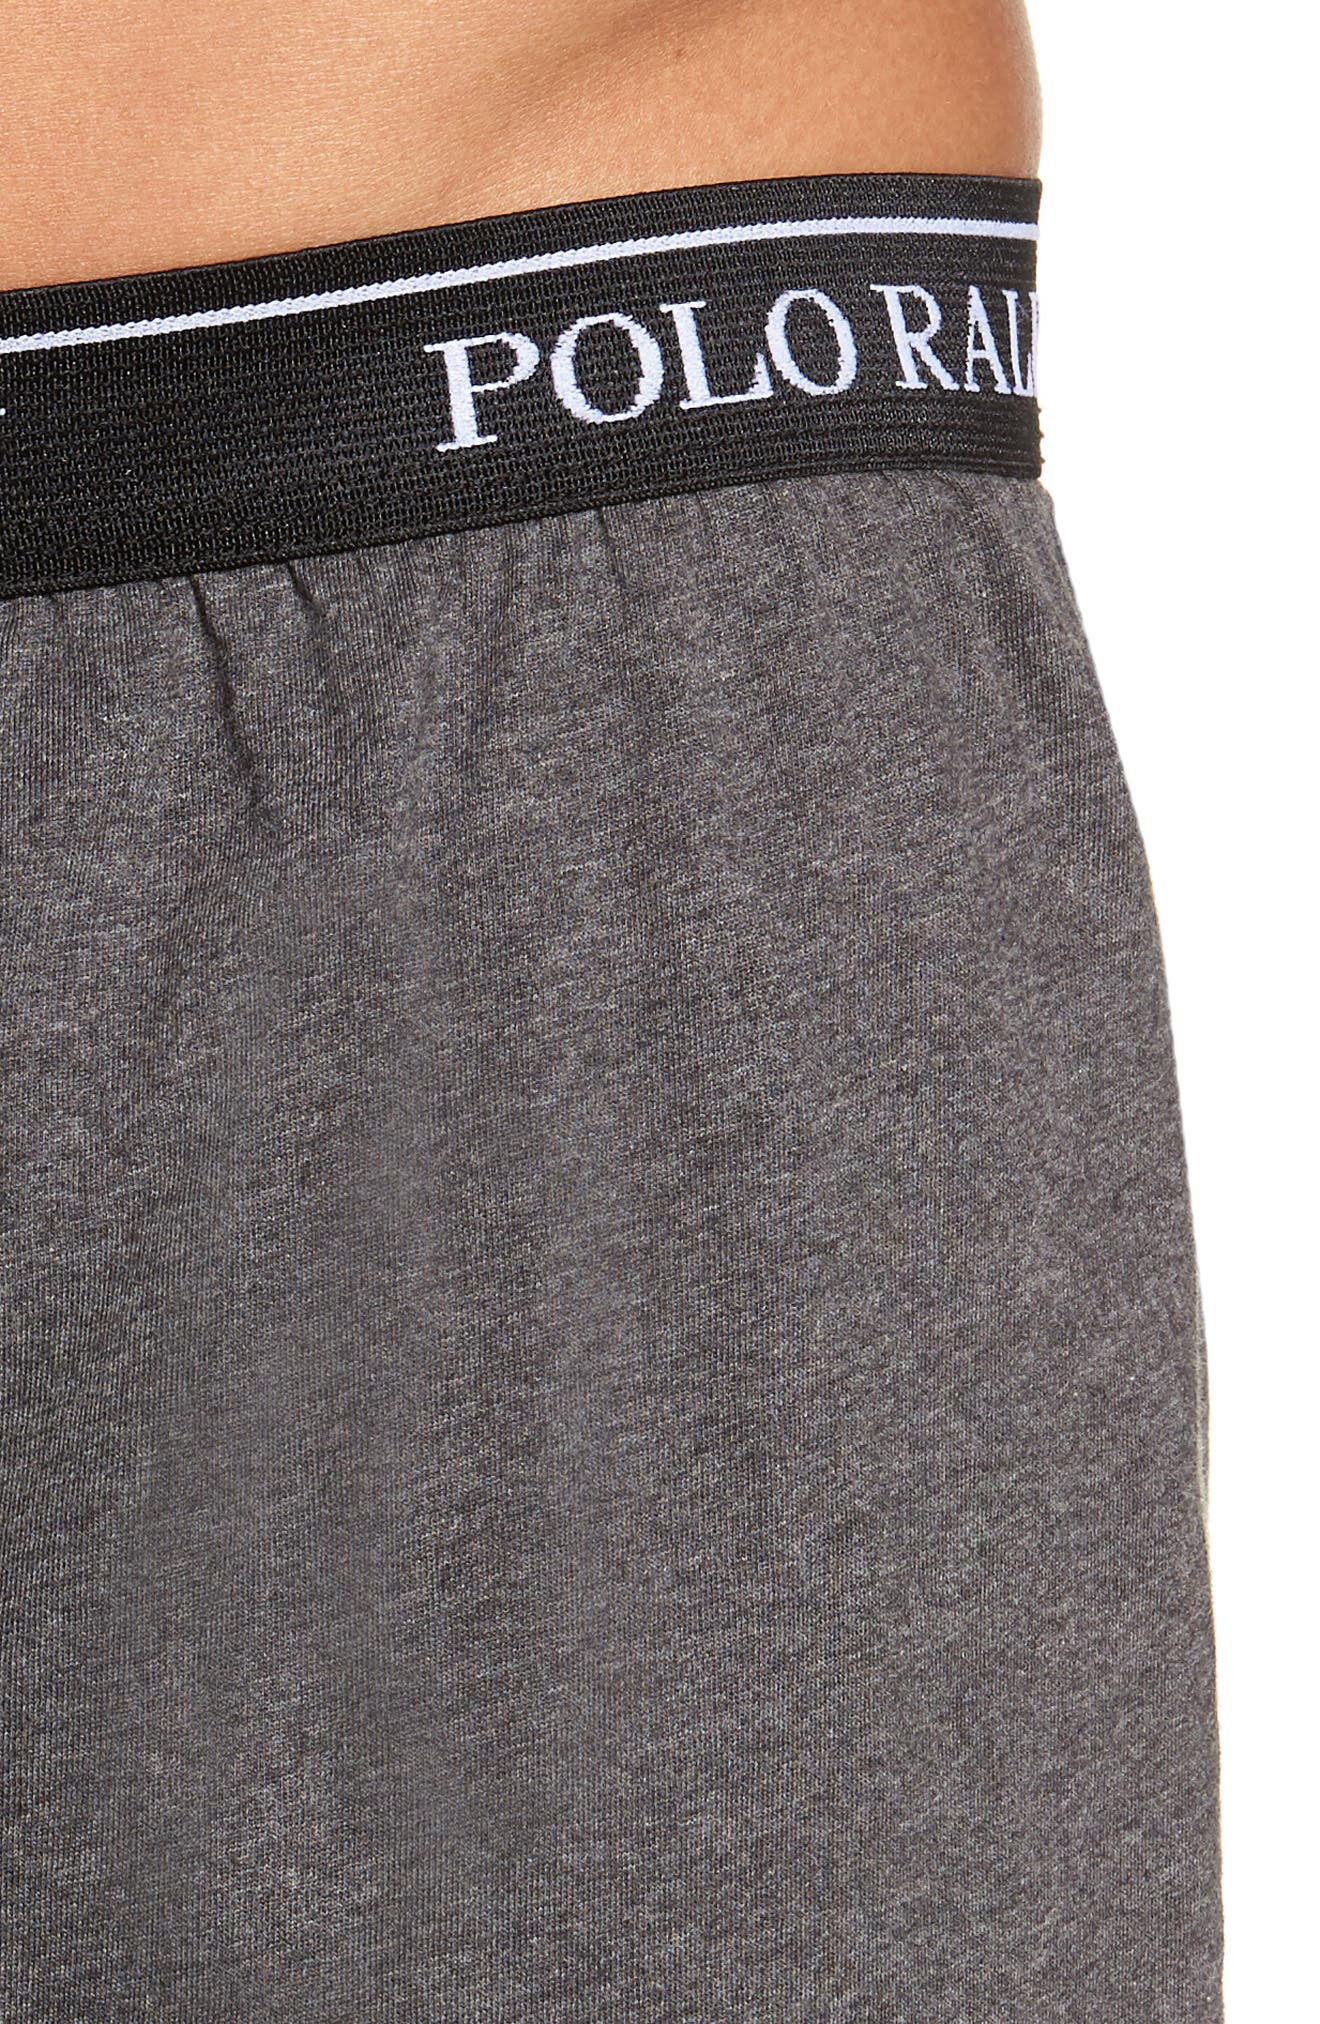 Polo Ralph Lauren 5-Pack Cotton Boxers,                             Alternate thumbnail 5, color,                             GREY/ BLACK MULTI